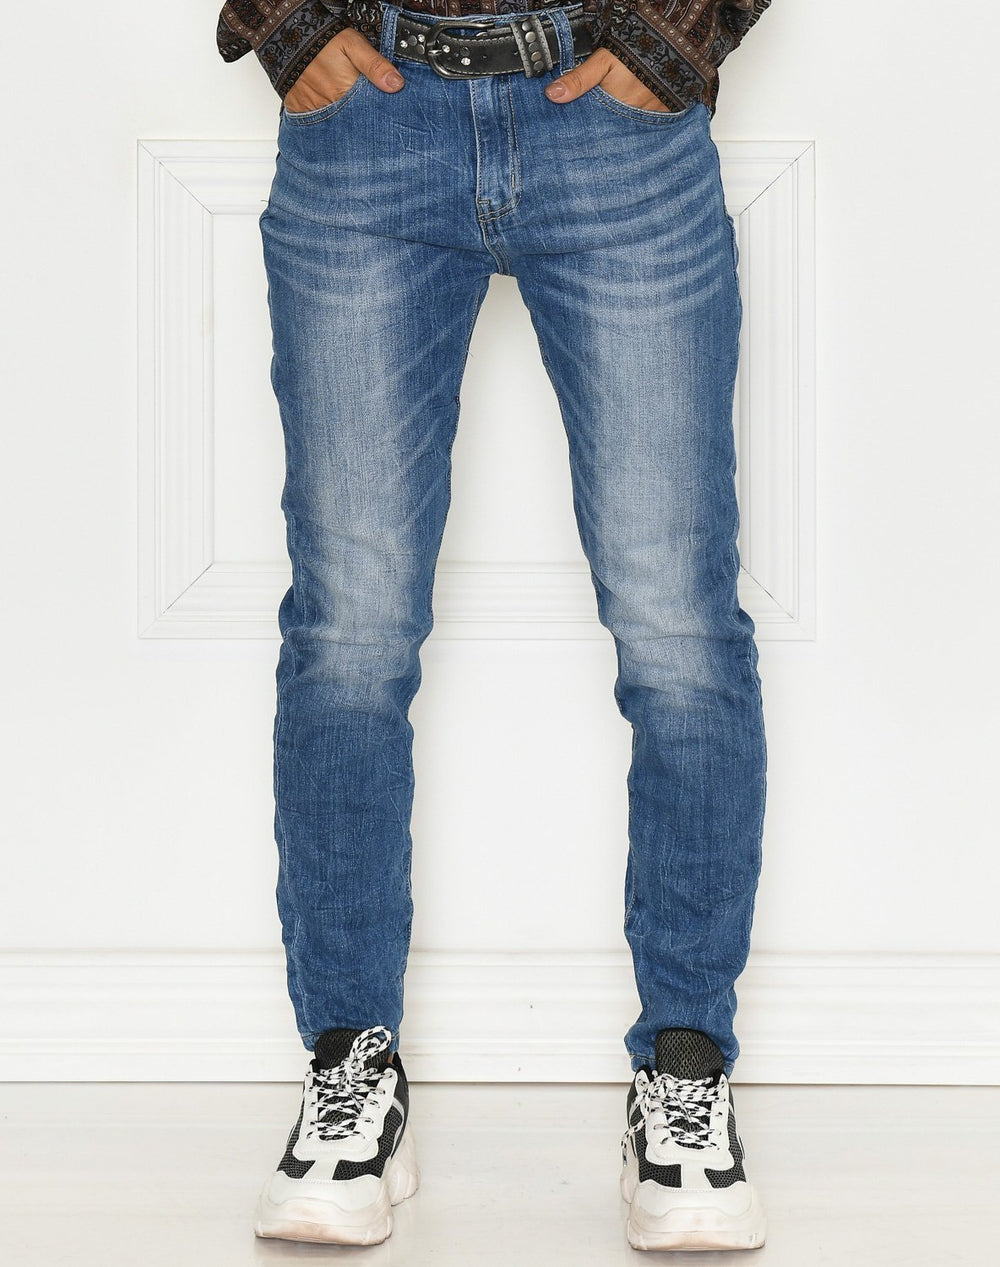 Prepair Rita jeans blue - Online-Mode